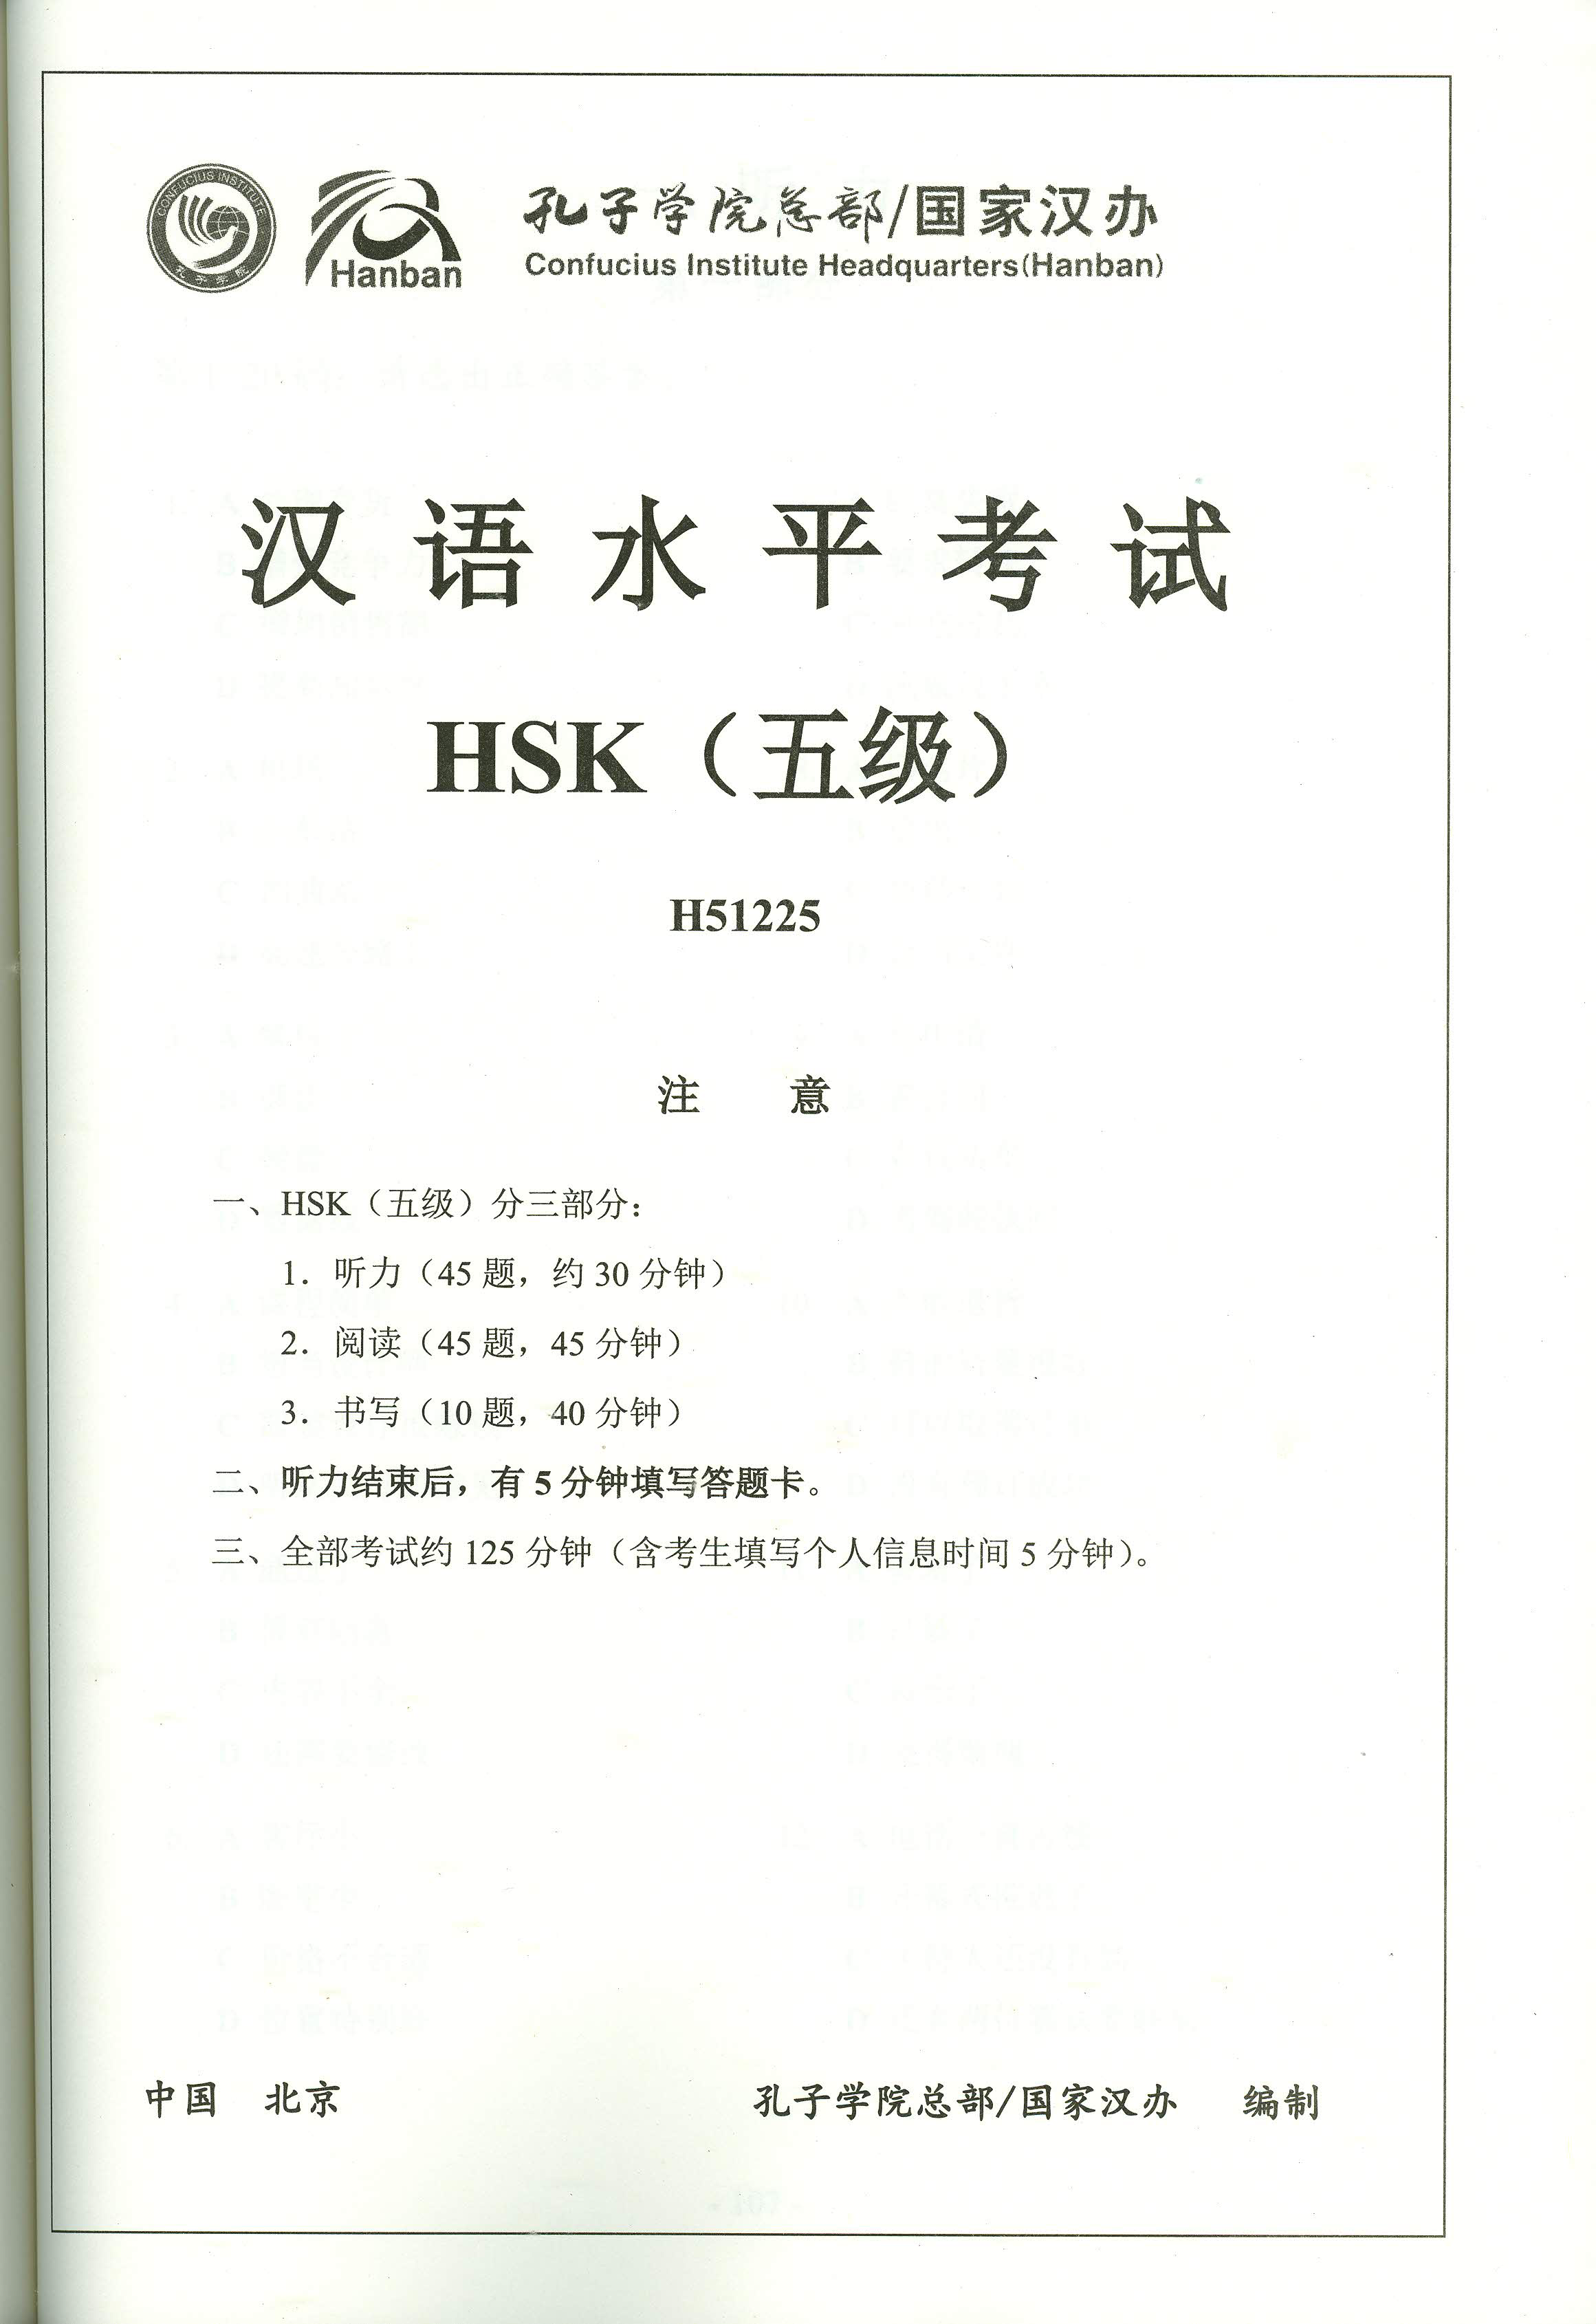 HSK5 H51225 Official Exam Paper main image